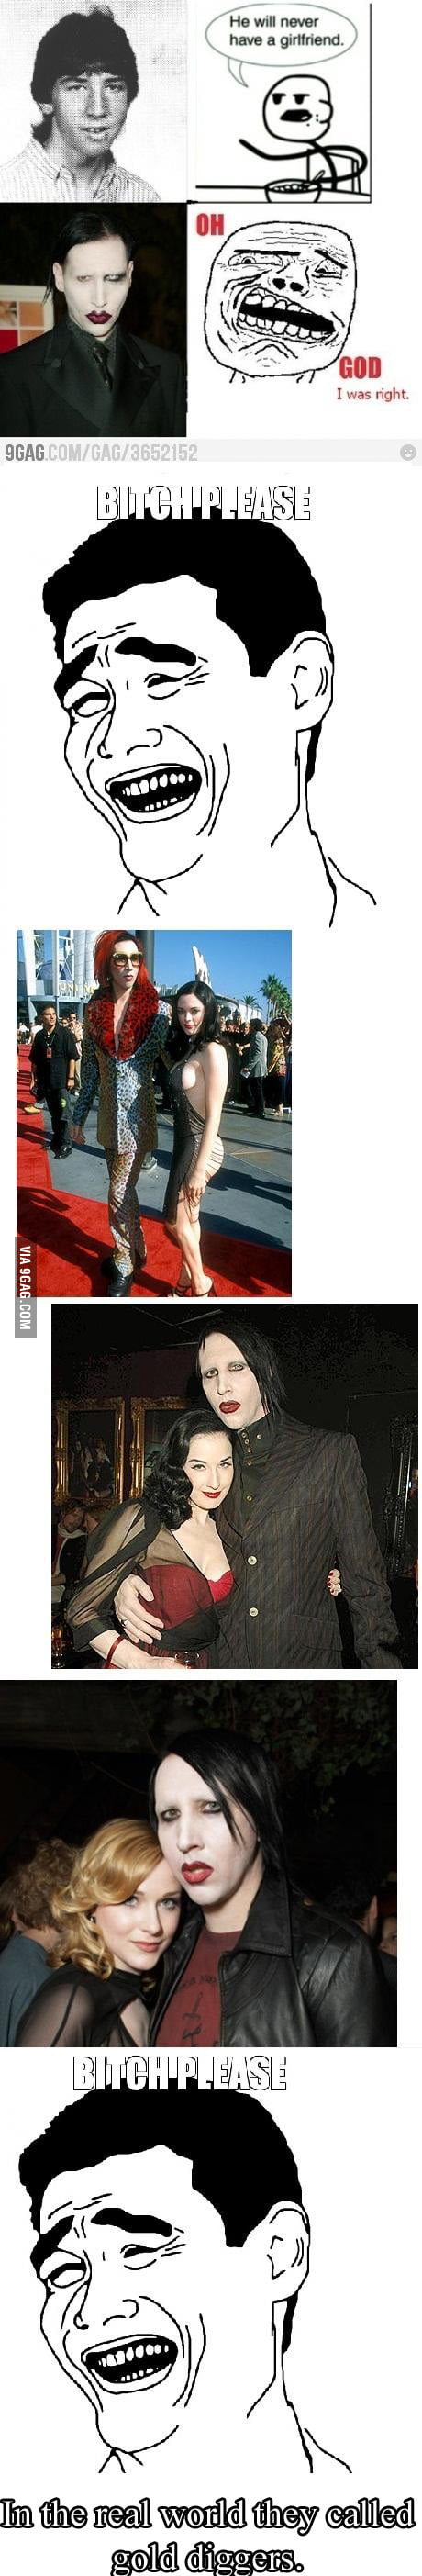 Marilyn Manson and his hot girlfriends, oops I meant..